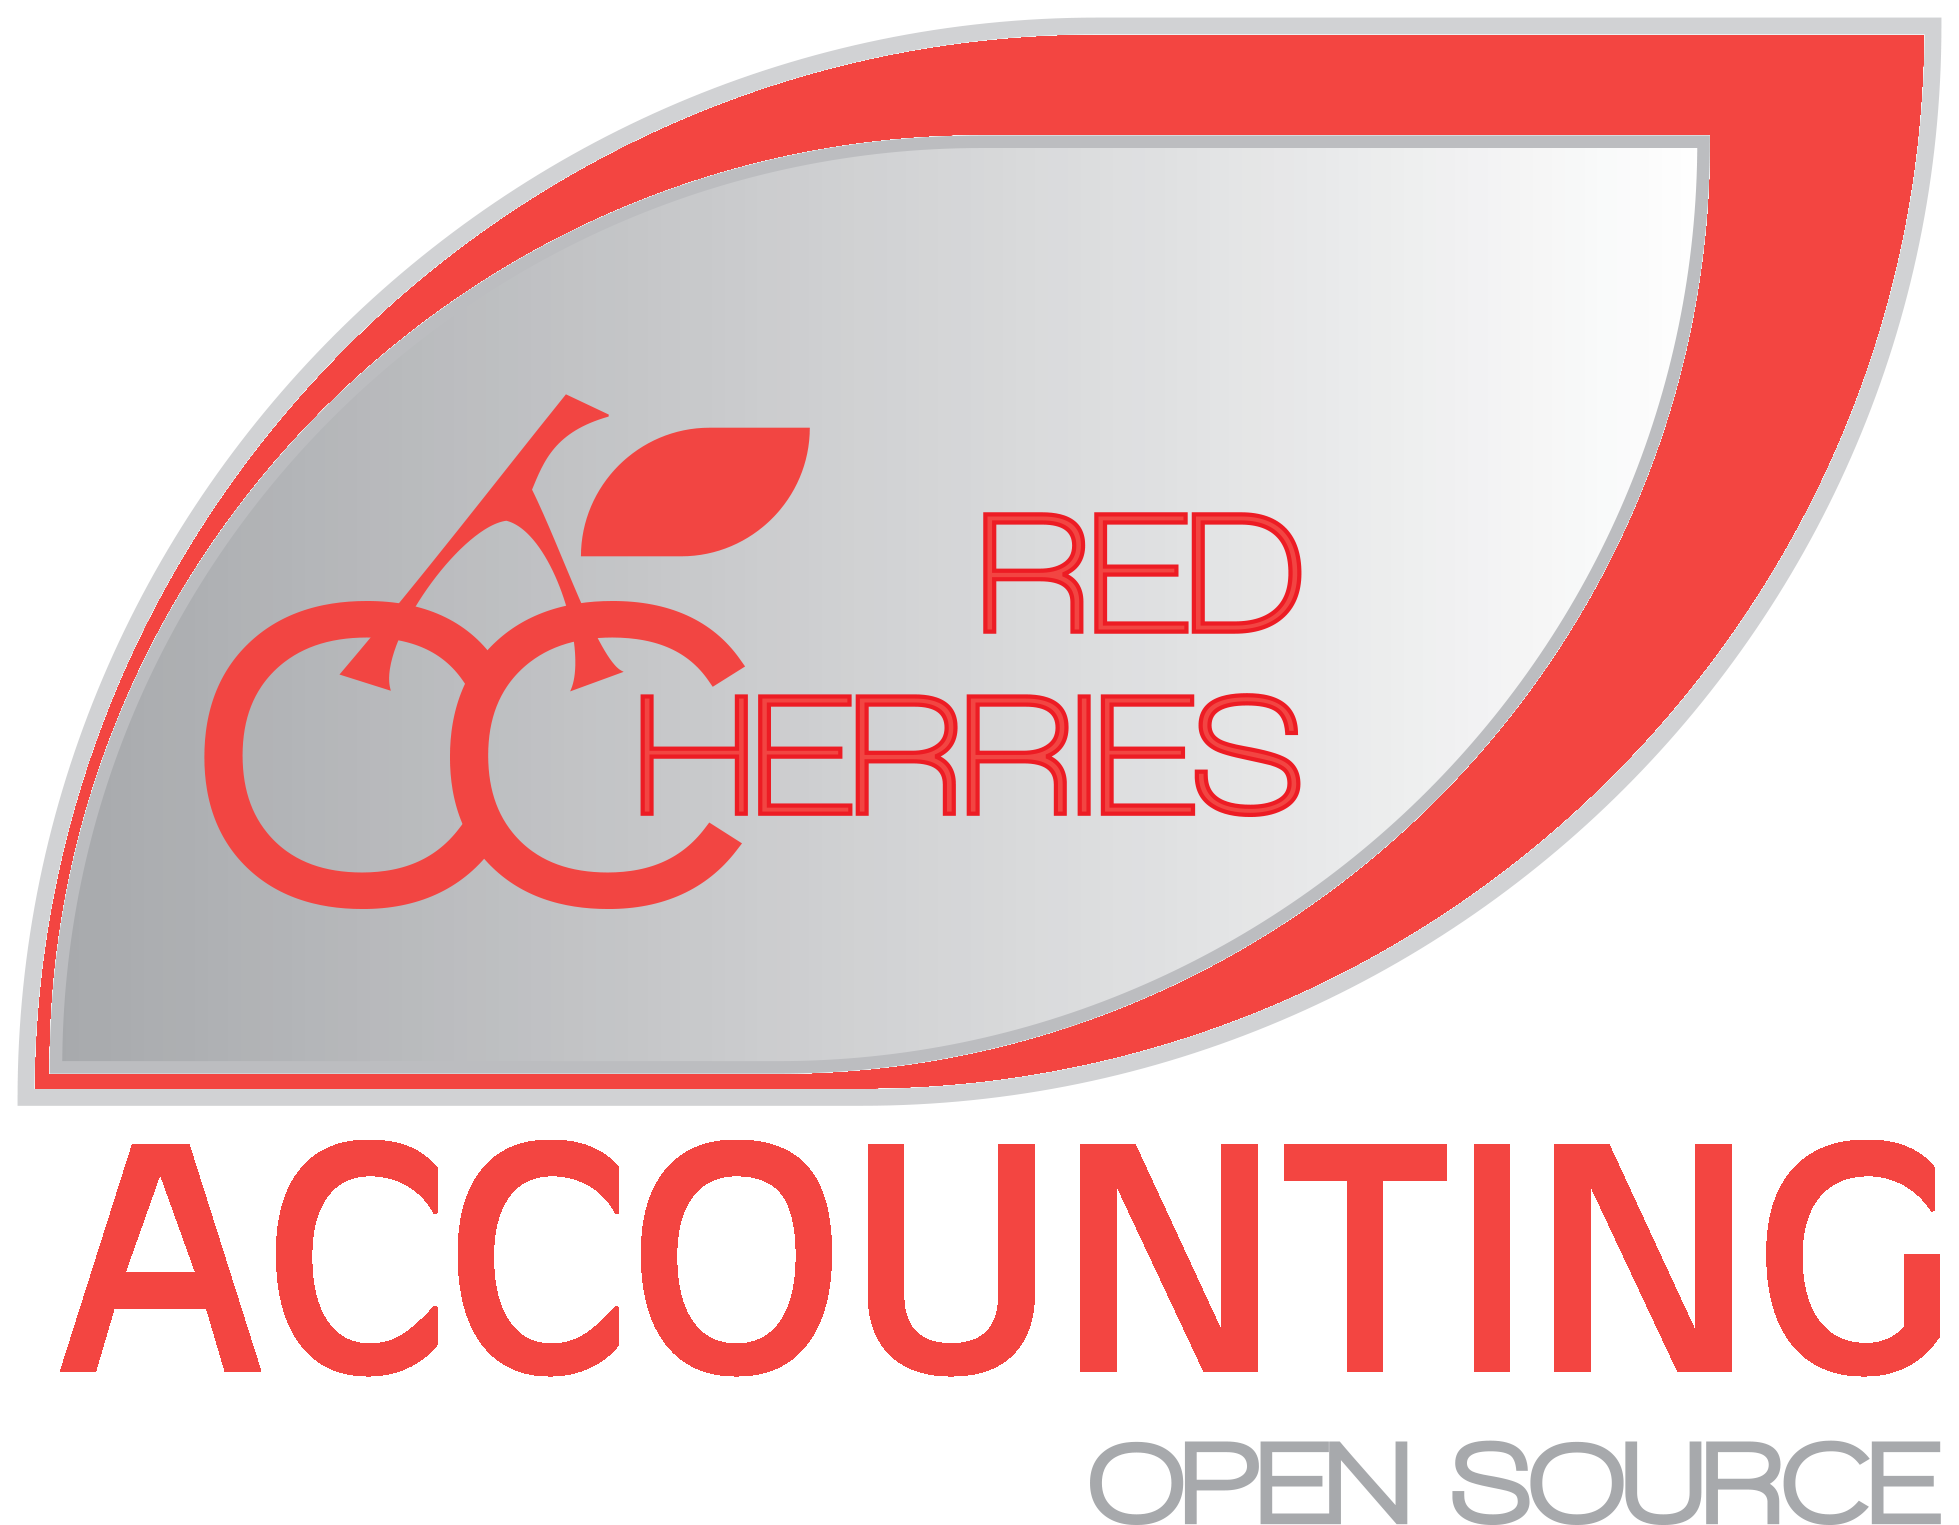 Red Cherries Accounting is a free and open source financial management system